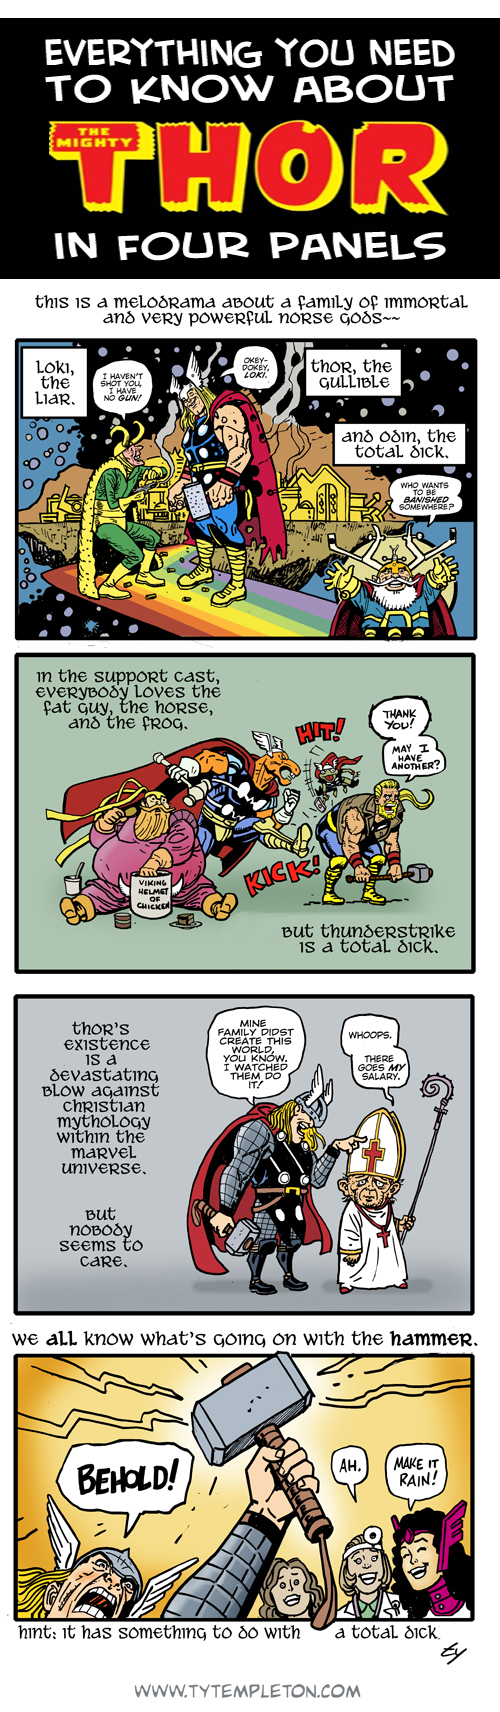 thor-strip-websized-r.jpg